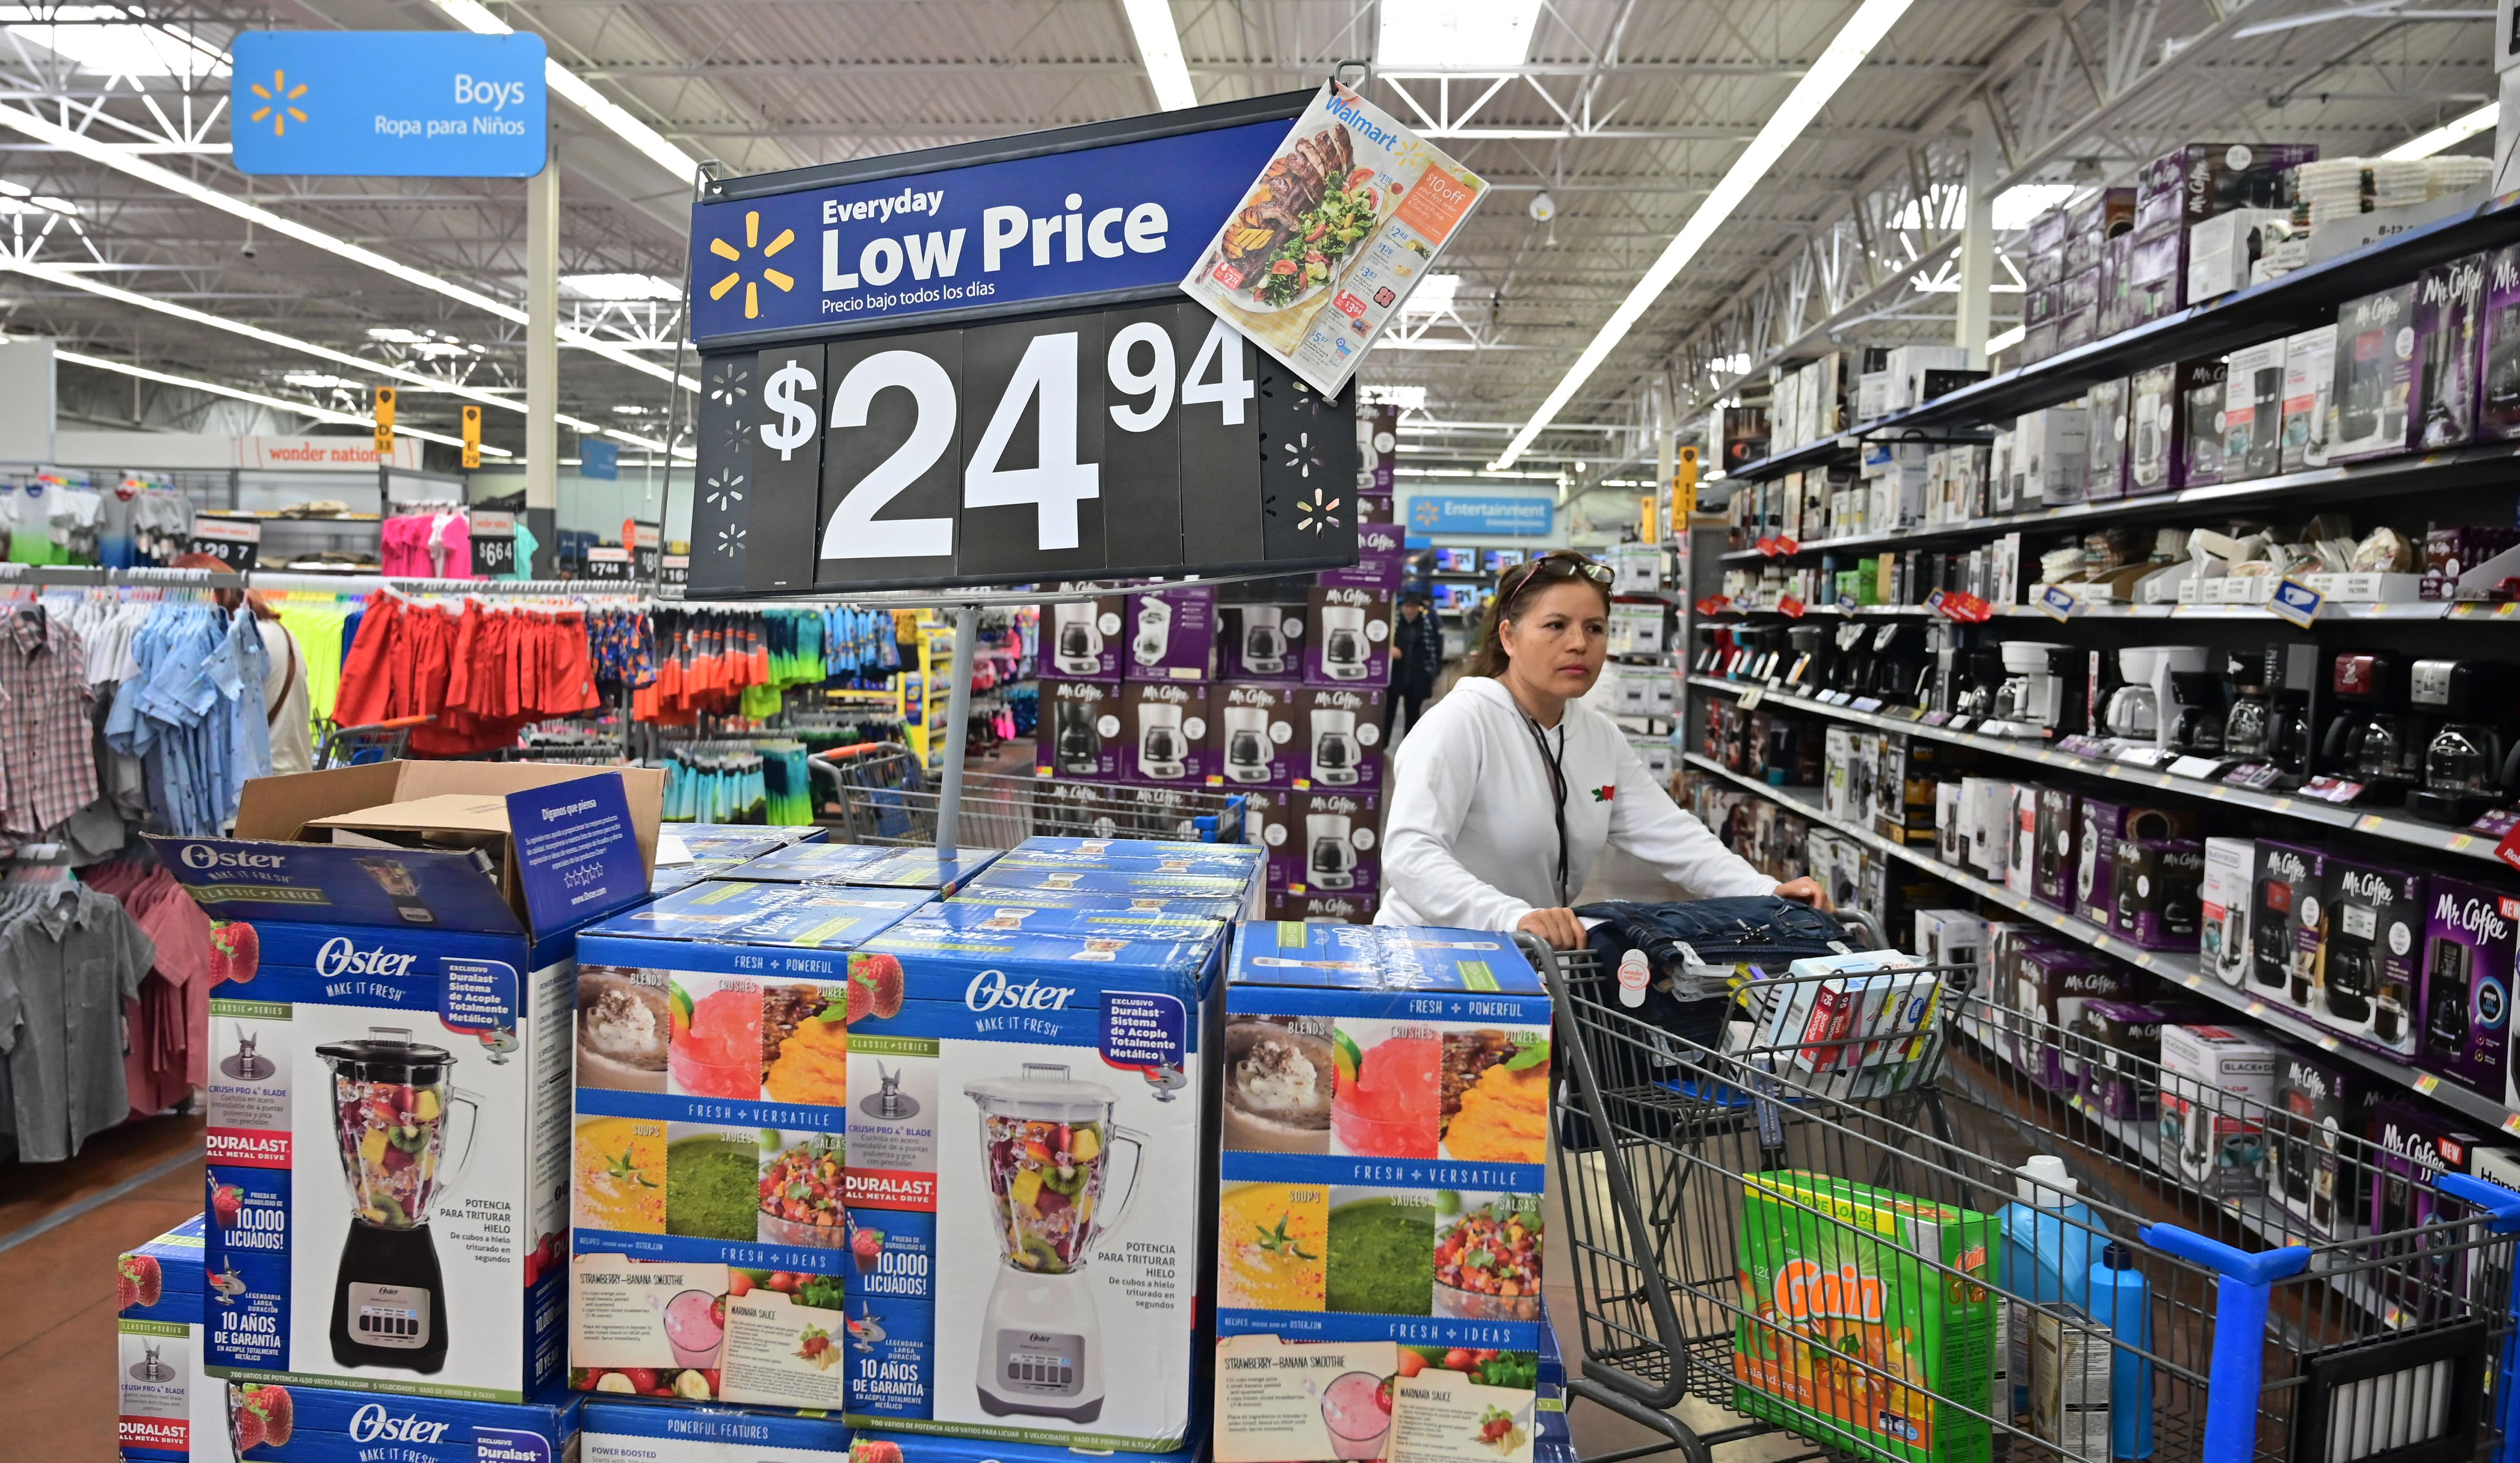 Walmart earnings beat estimates, shares rise on higher outlook ahead of holidays